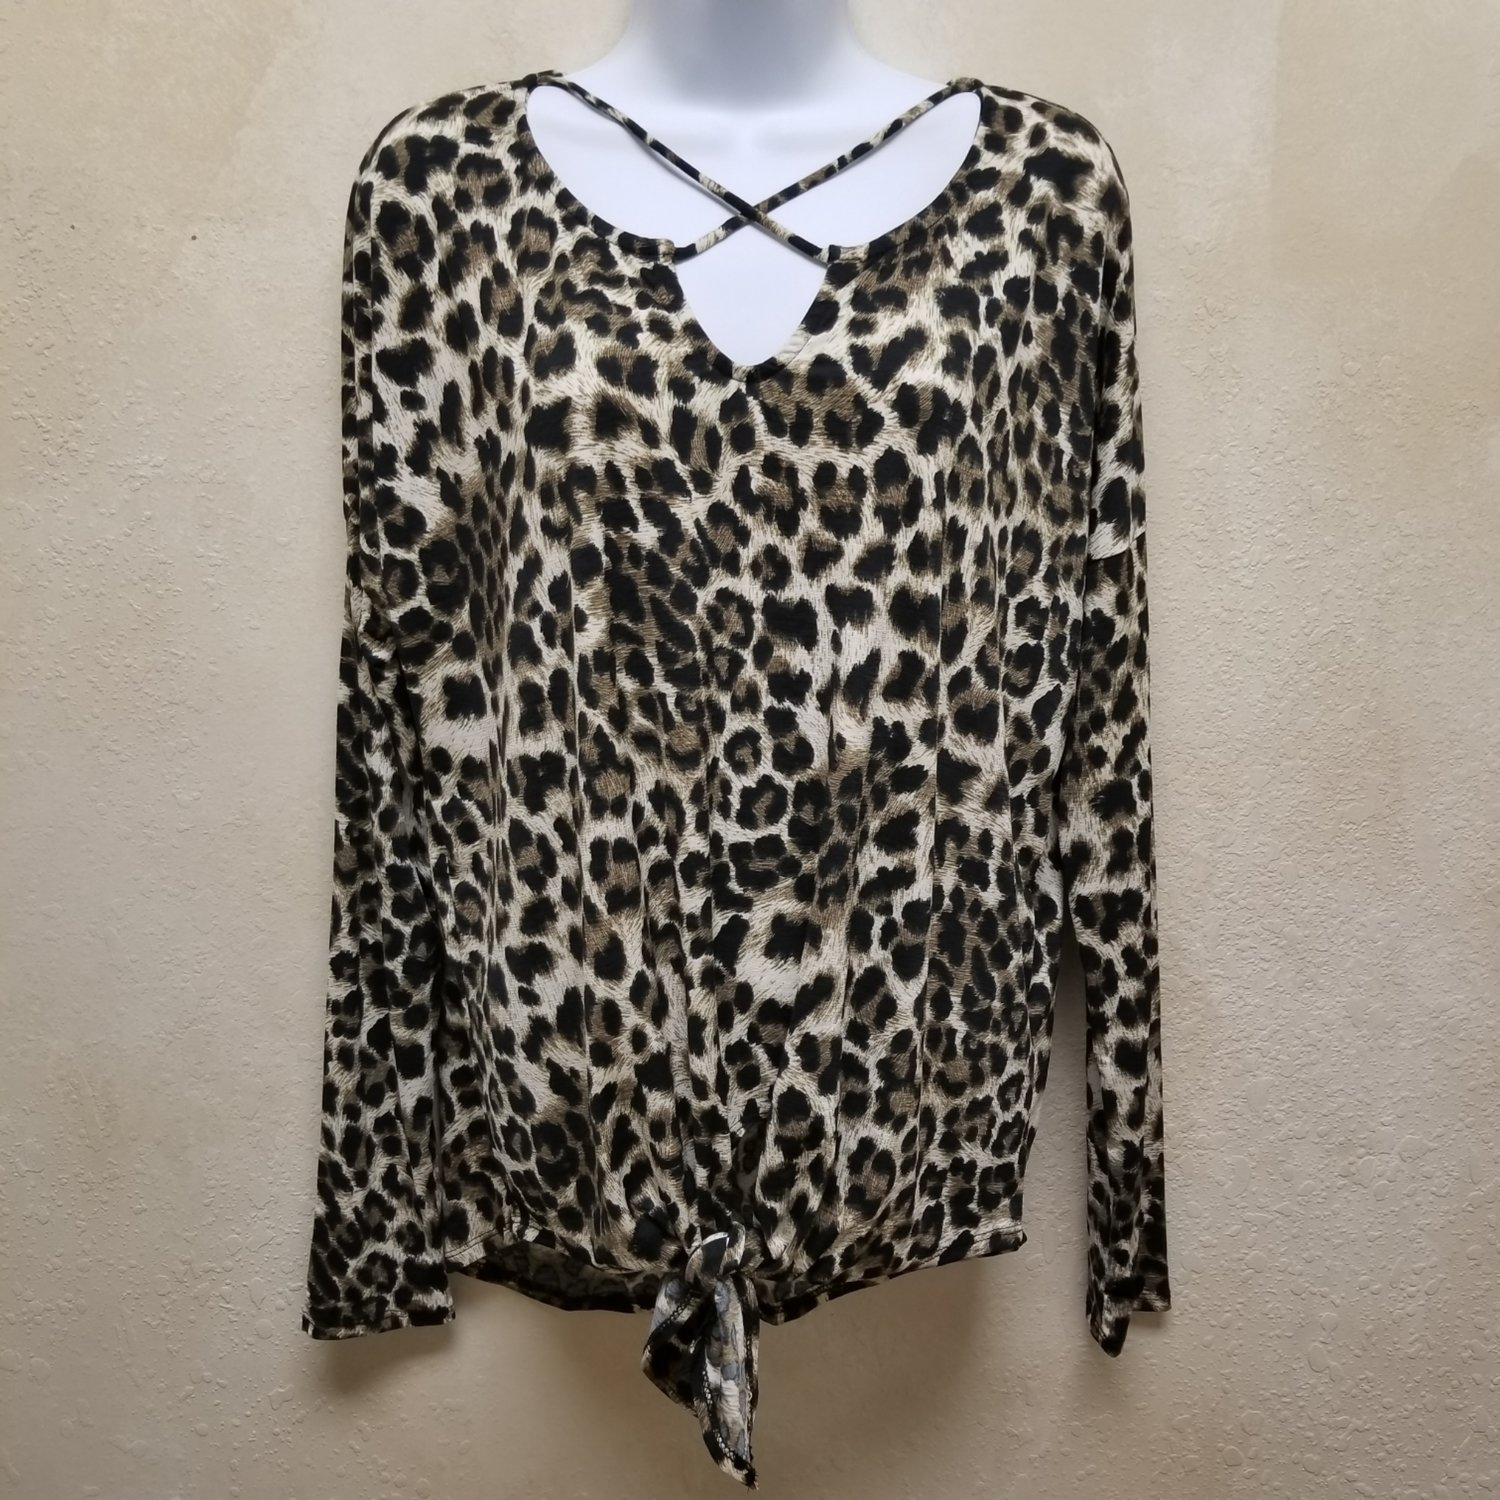 Cheetah Print Top with Criss Cross Neck and Front Self Tie Knot